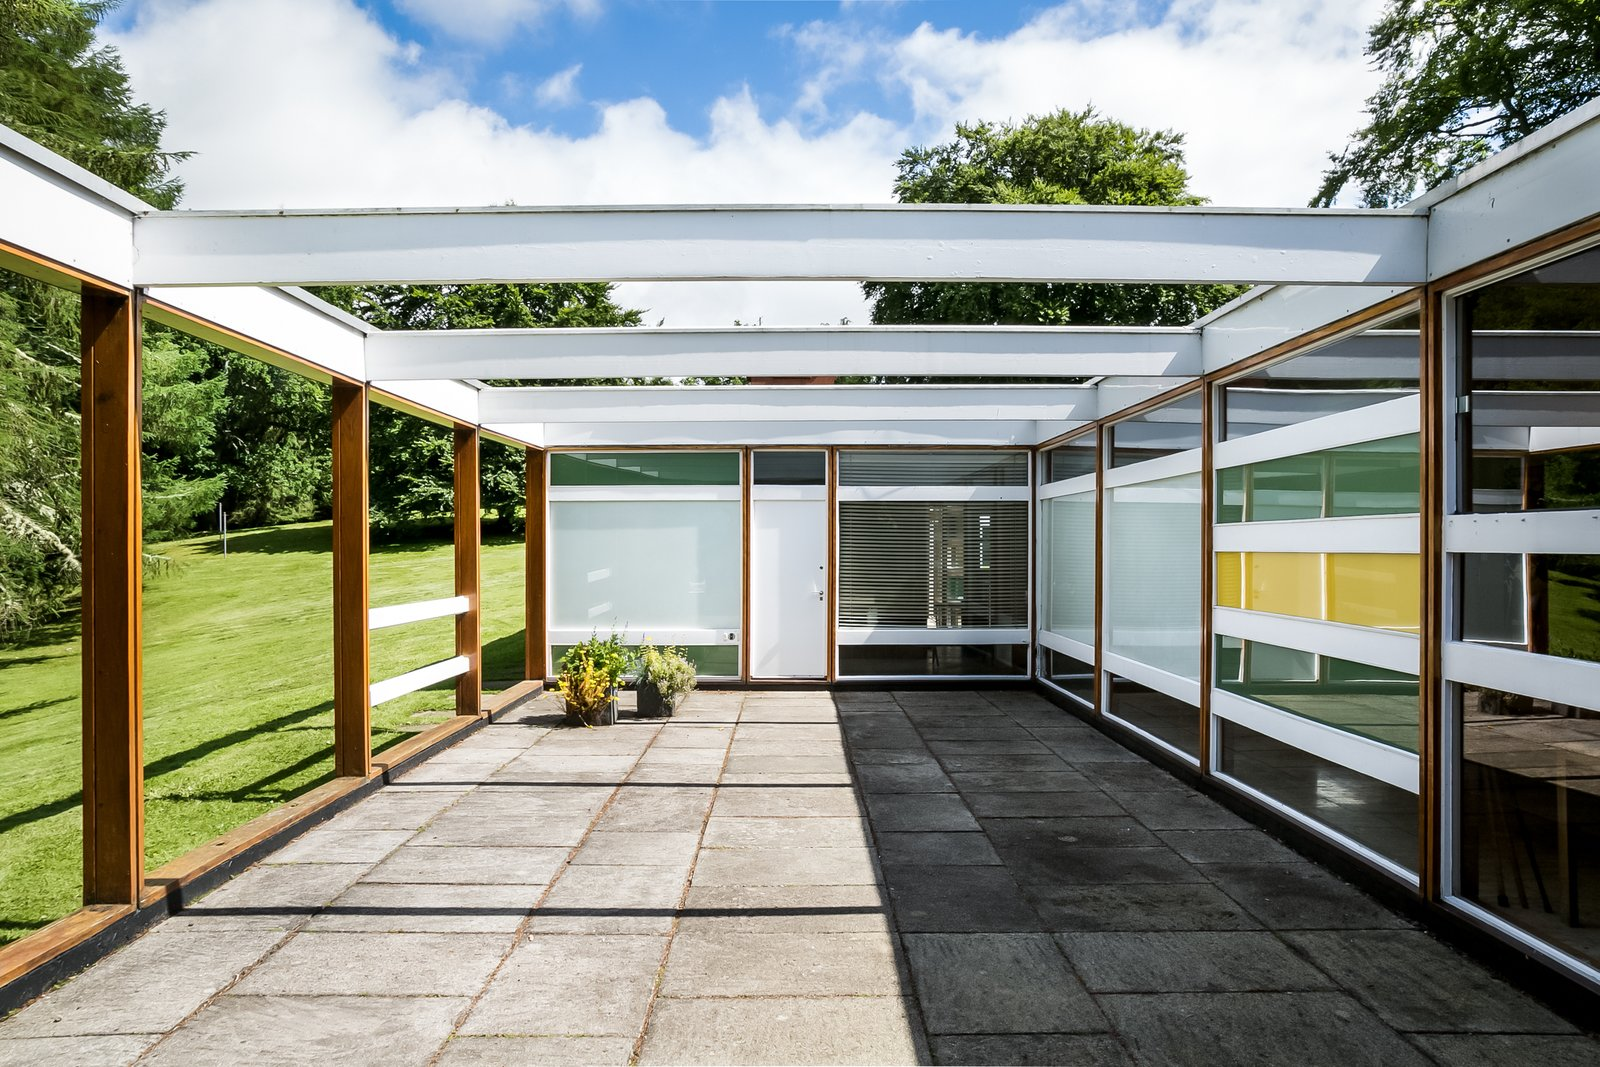 Tagged: House, Wood Siding Material, Metal Siding Material, Concrete Siding Material, Outdoor, Trees, Grass, Side Yard, Concrete Patio, Porch, Deck, and Hardscapes. The Iconic, Midcentury Home That Peter Womersley Designed For Bernat Klein Asks $1.02M - Photo 3 of 11